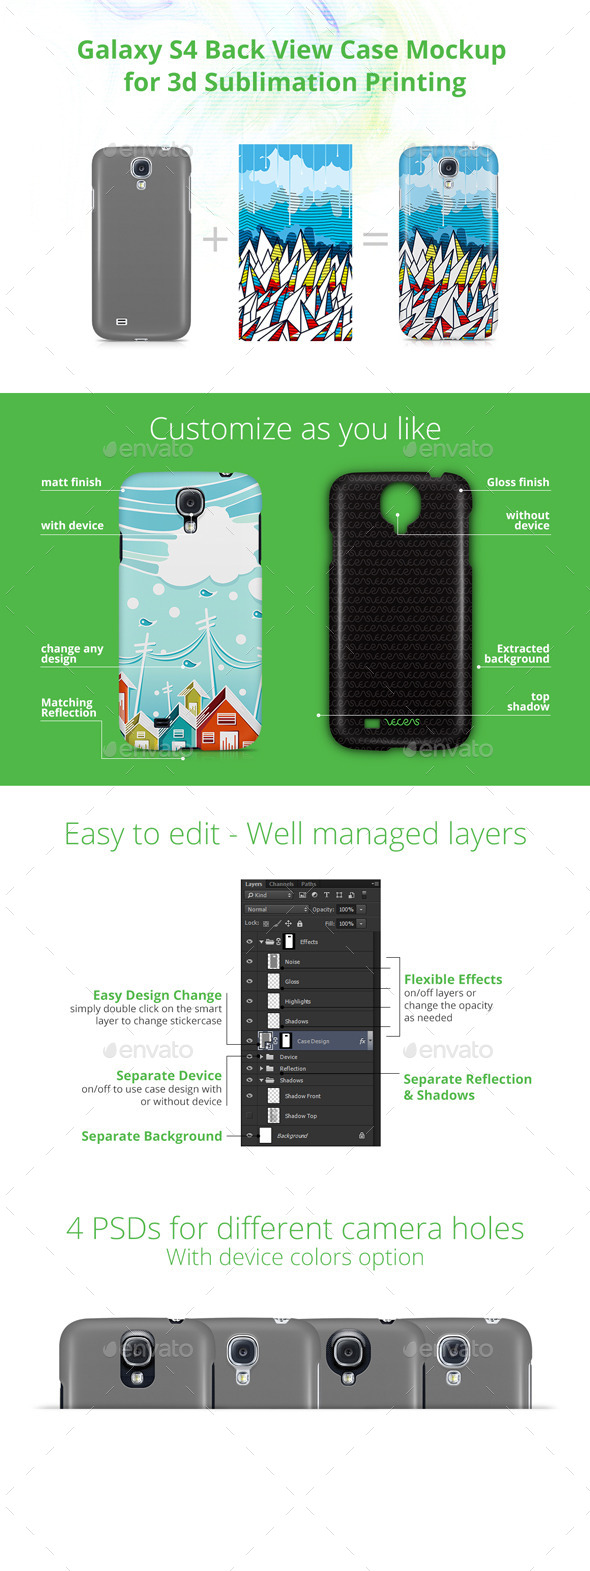 Galaxy S4 Case Design Mockup for 3d Sublimation Printing - Back View - Mobile Displays